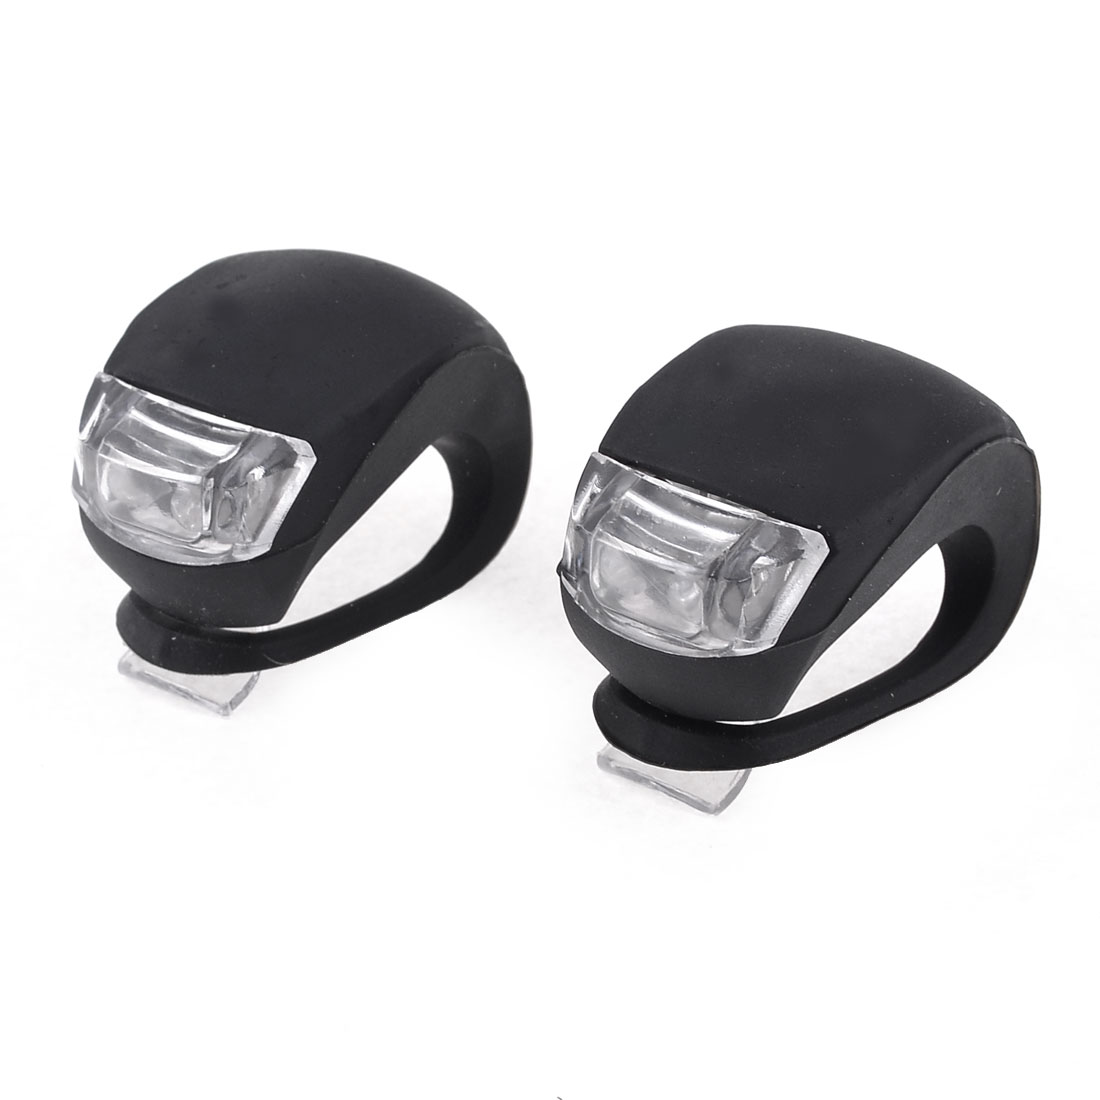 Battery Powered White Two LED 3 Mode Elastic Bicycle Bike Head Light Lamp 2pcs